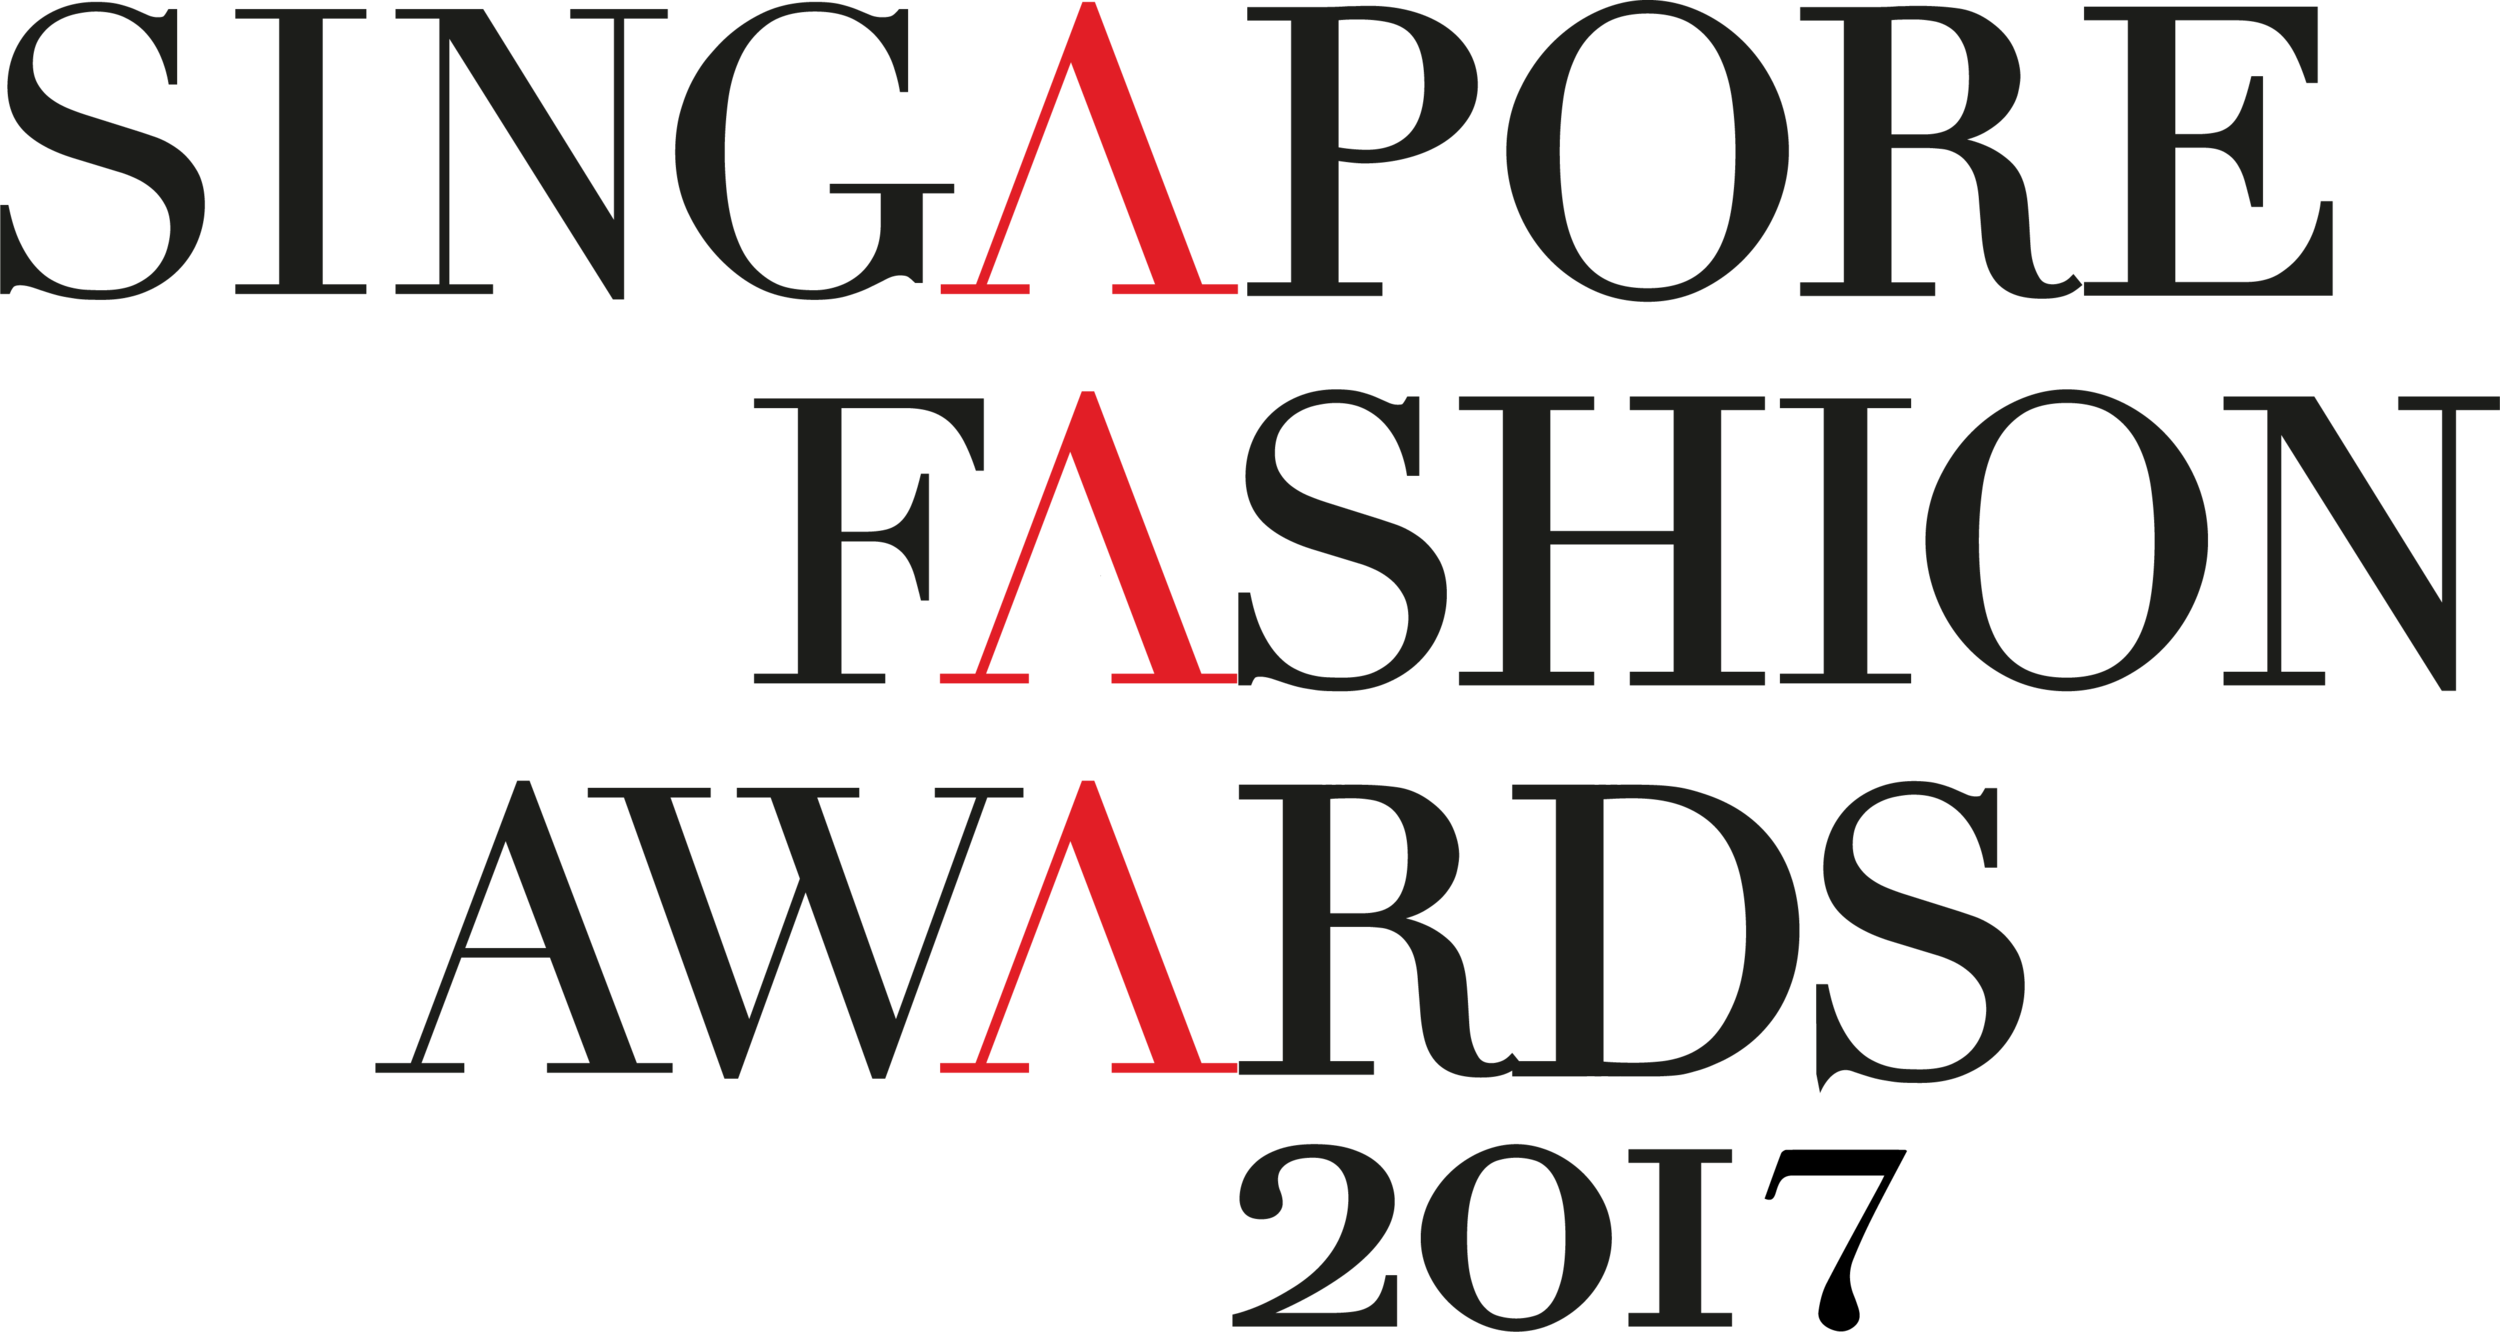 Singapore Fashion Awards